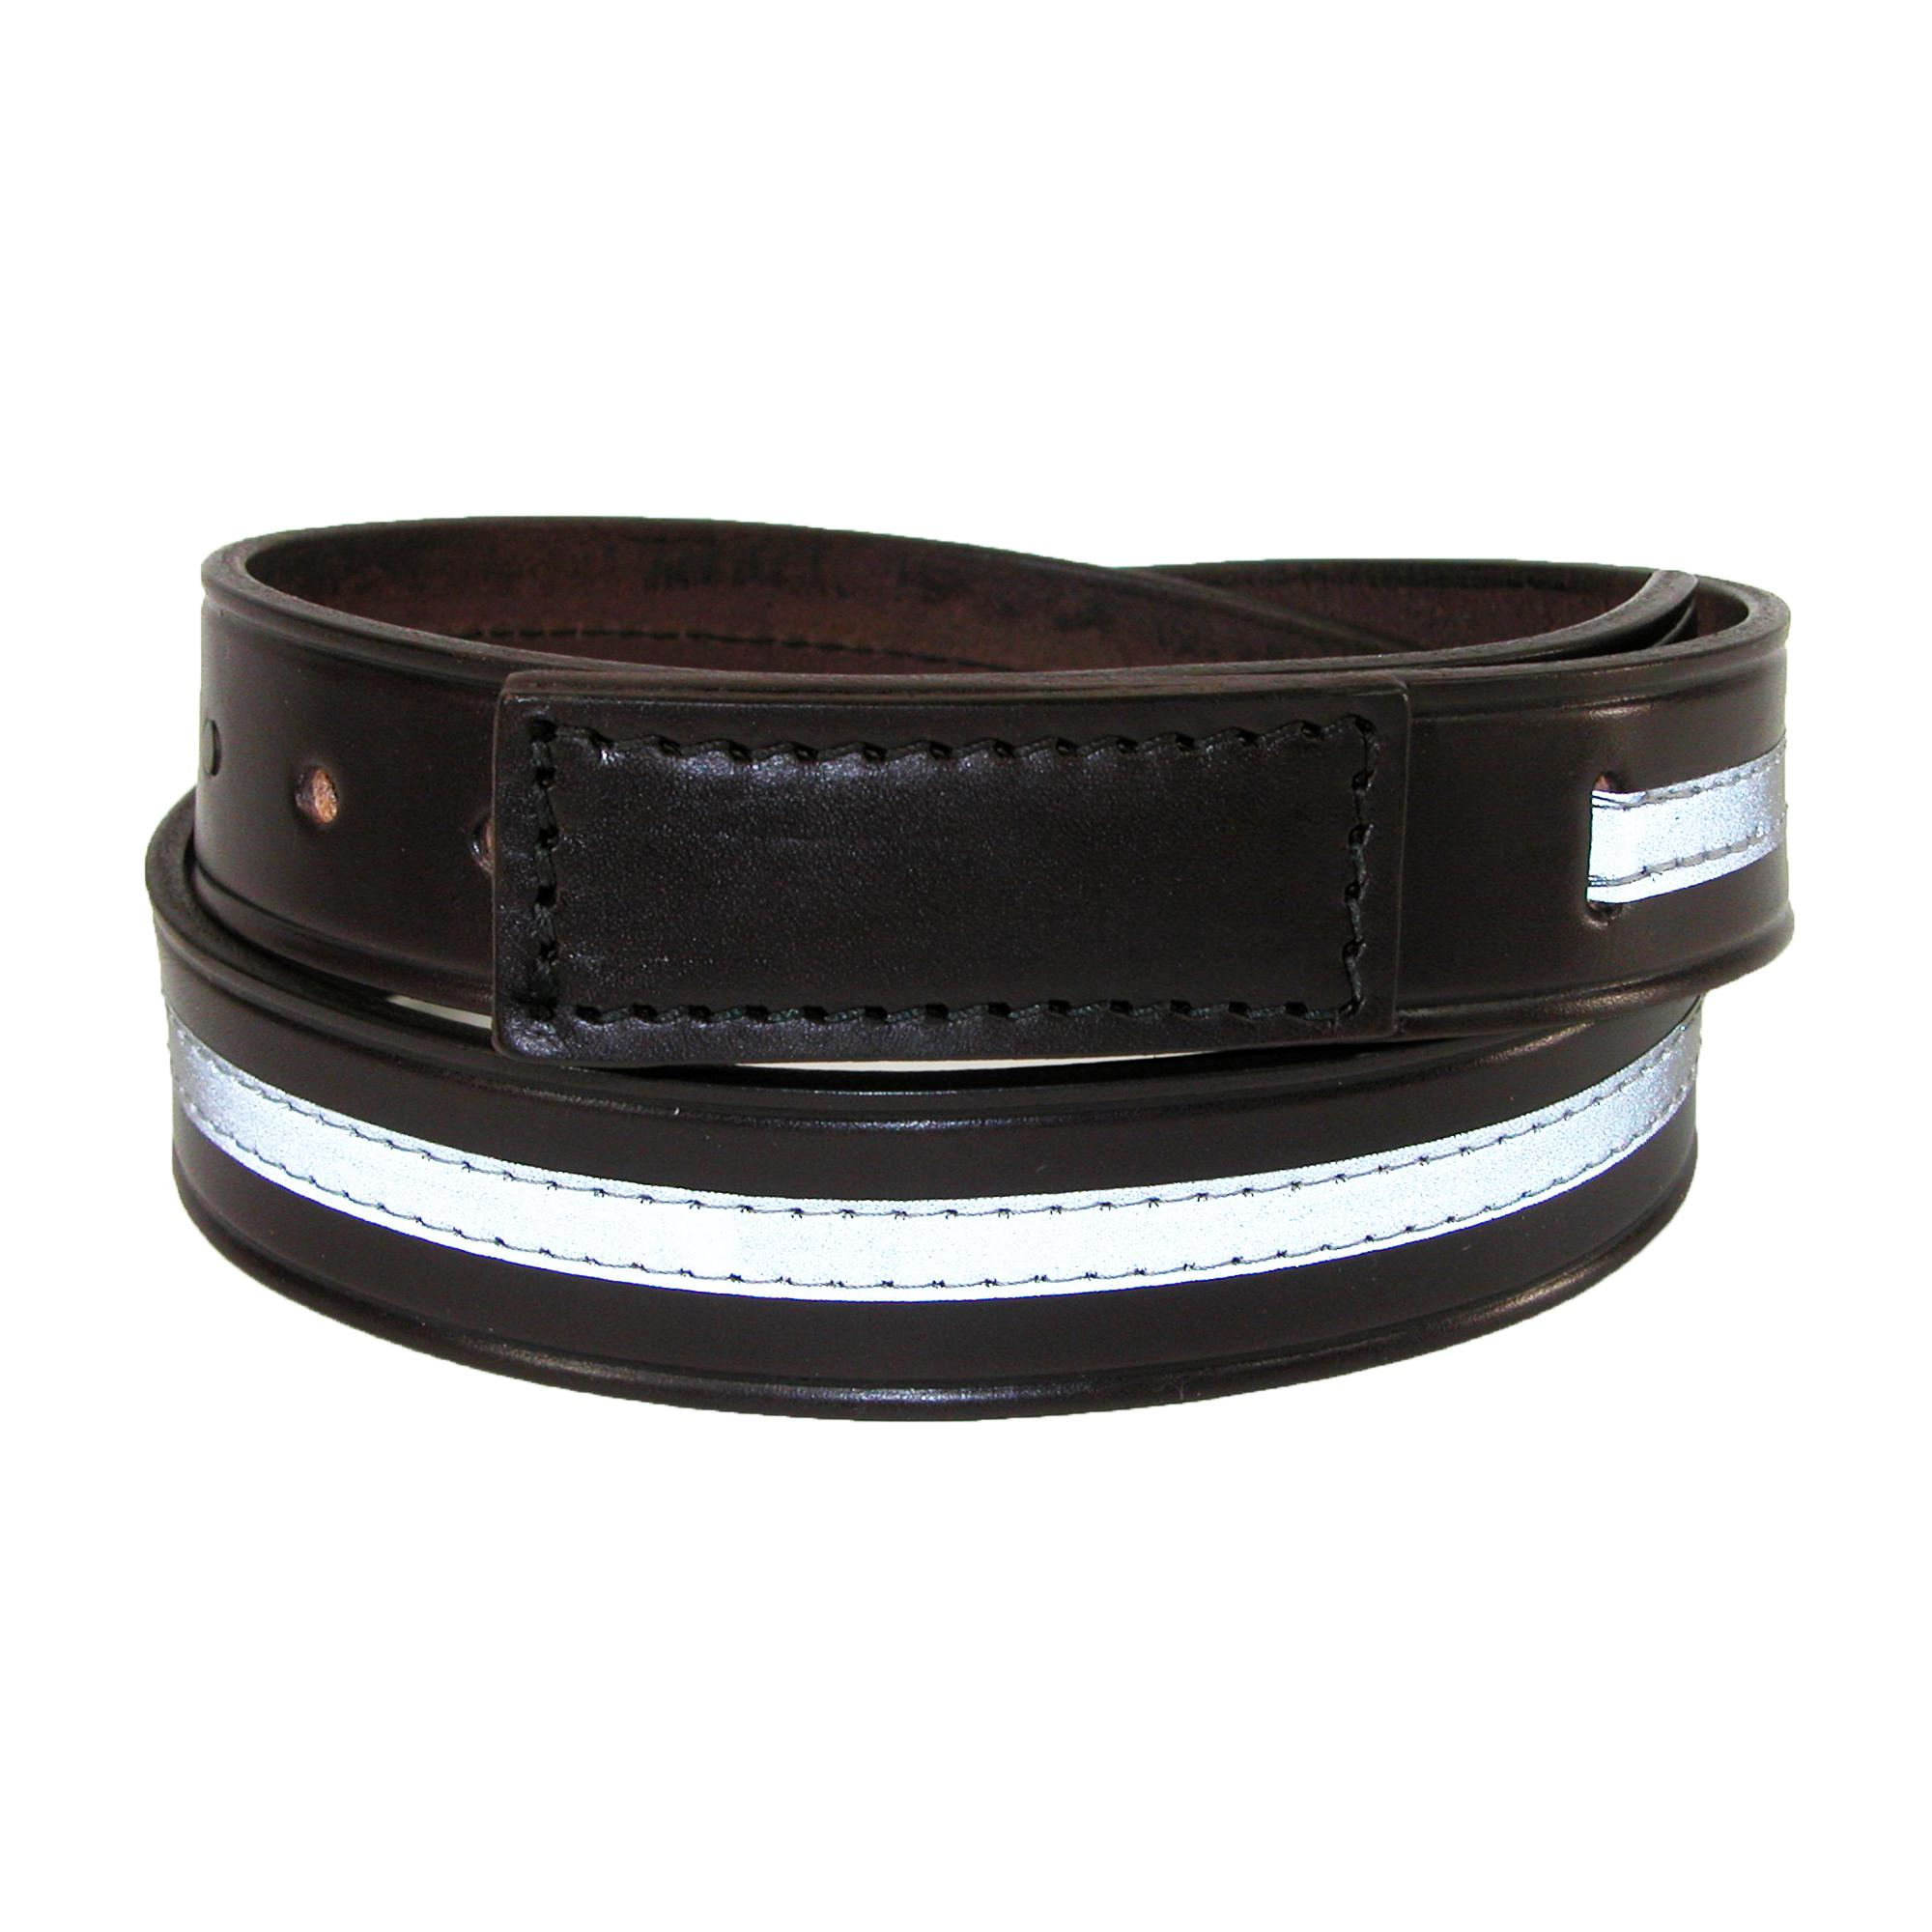 Boston Leather Men's Leather Reflective Movers & Mechanics Covered Buckle Belt